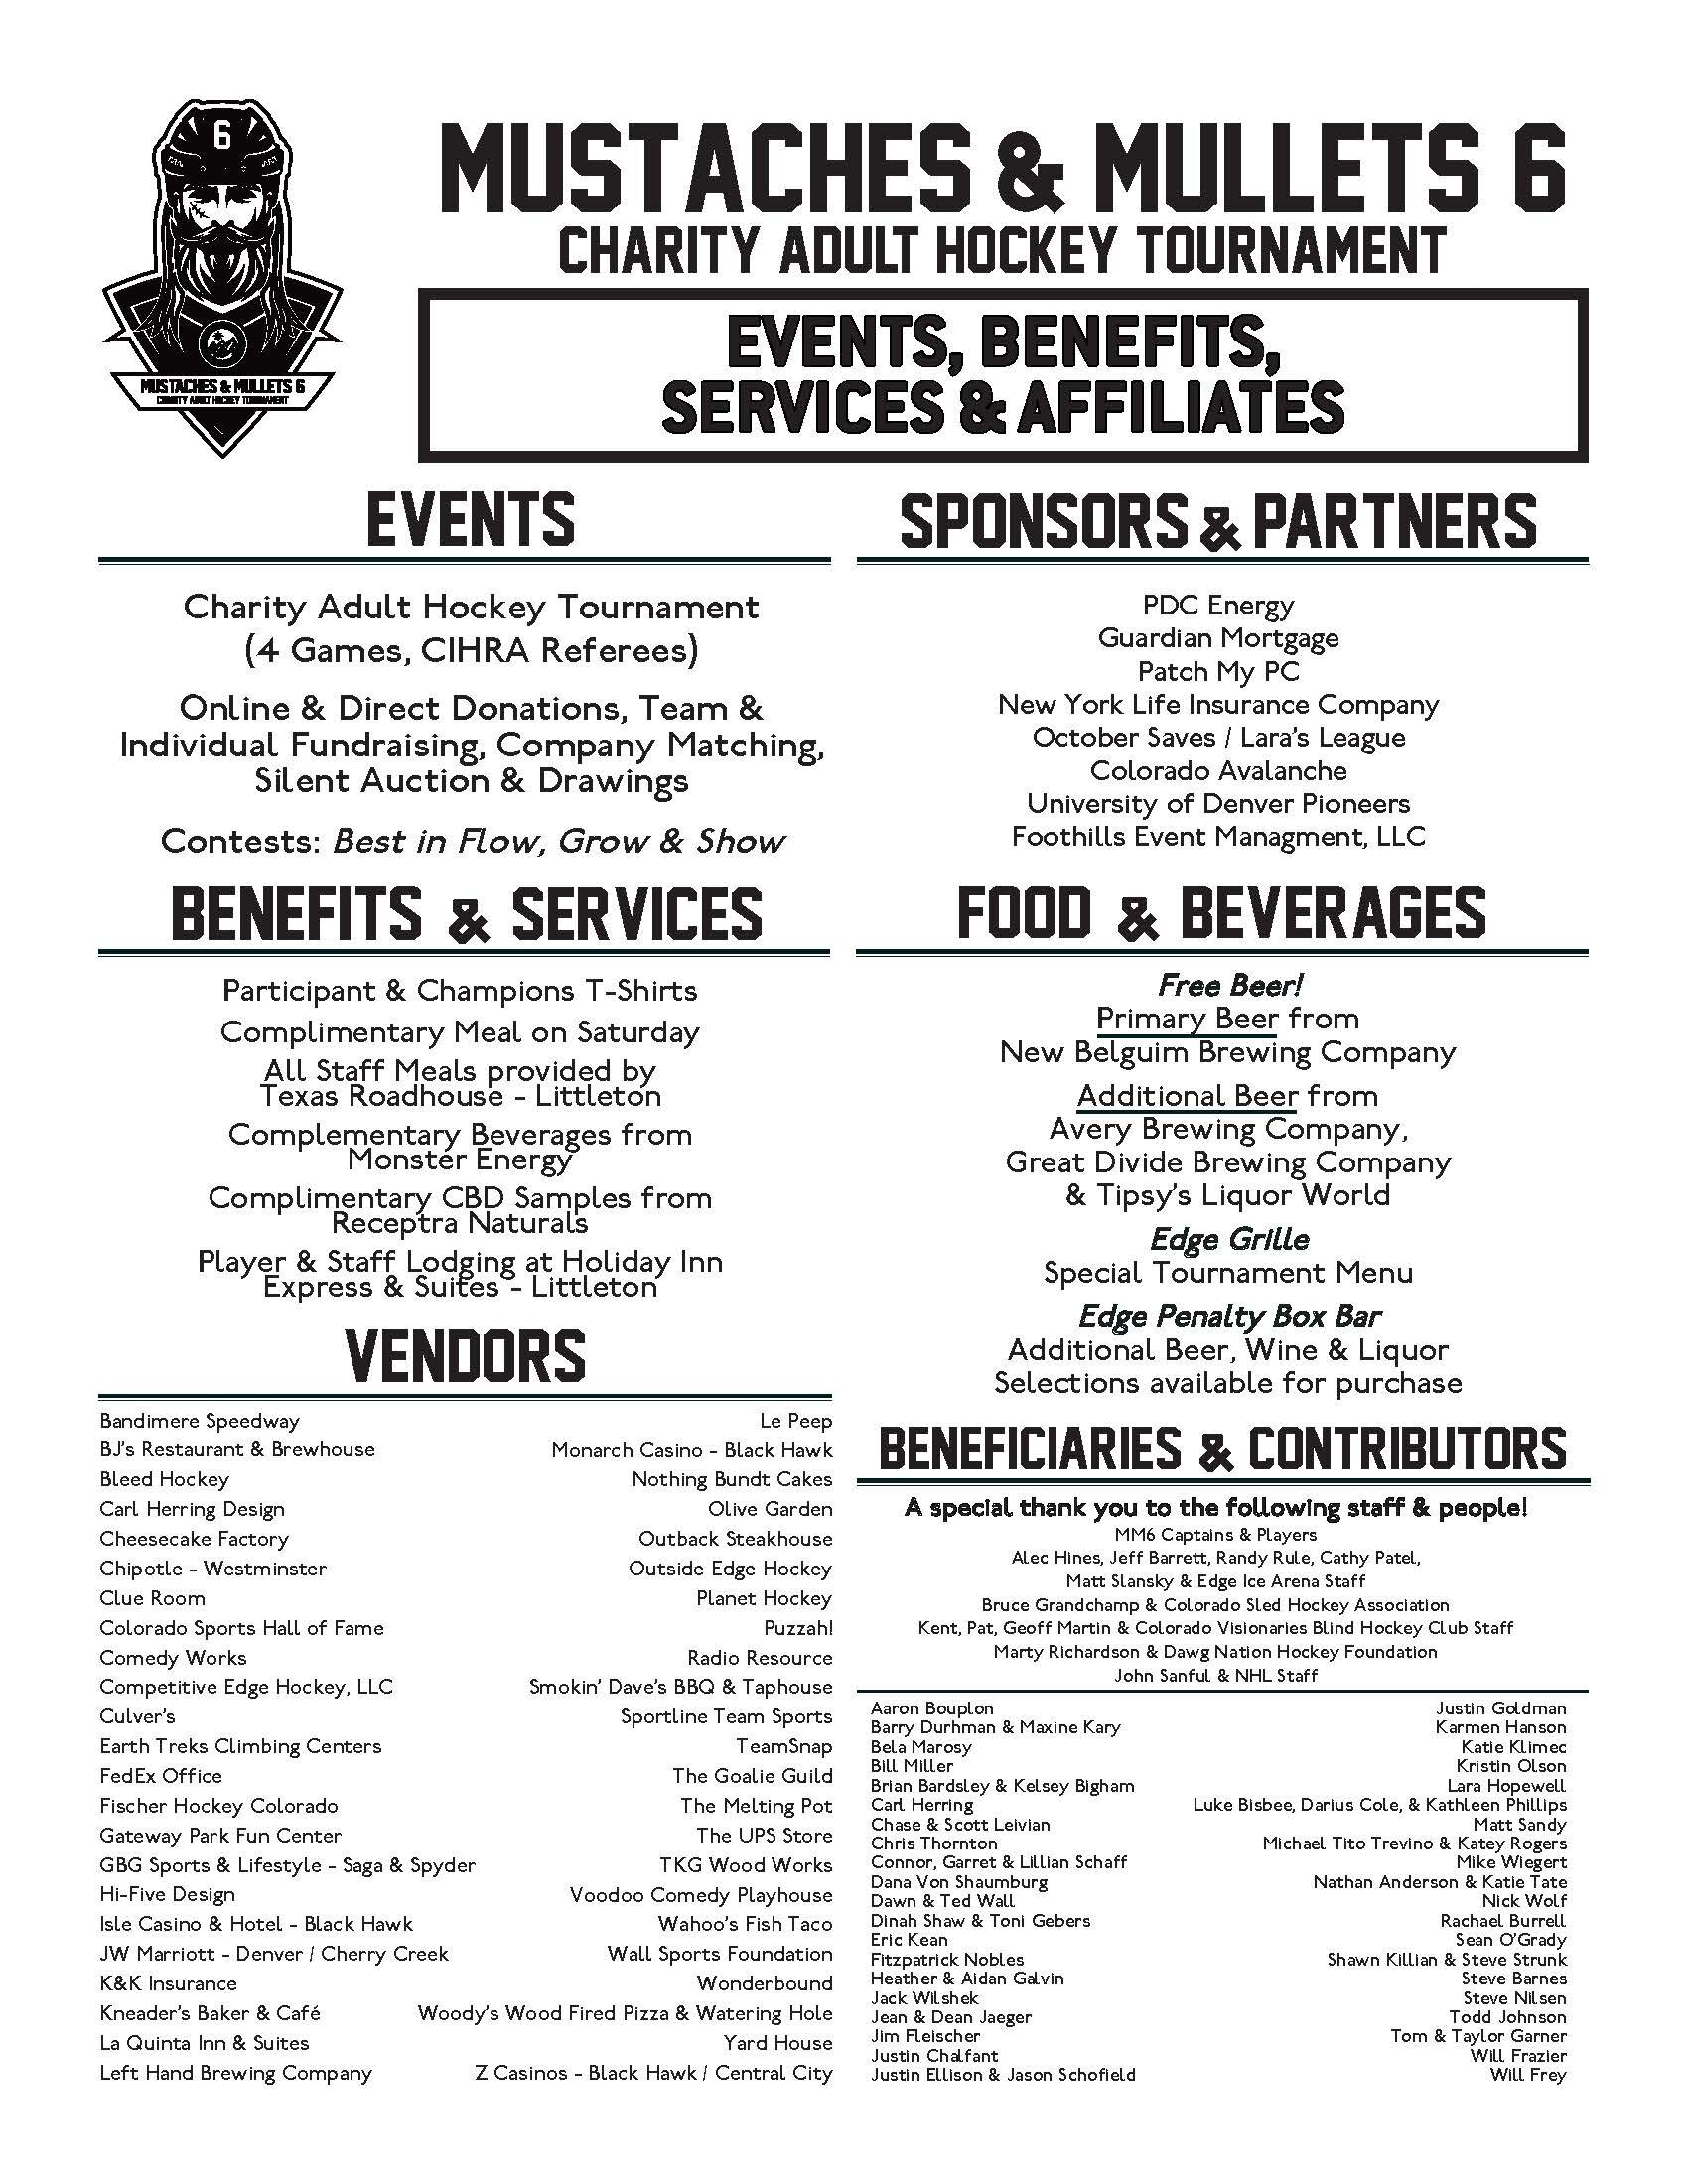 Mustaches & Mullets 6 Events, Benefits, Beneficiaries, & Affiliates